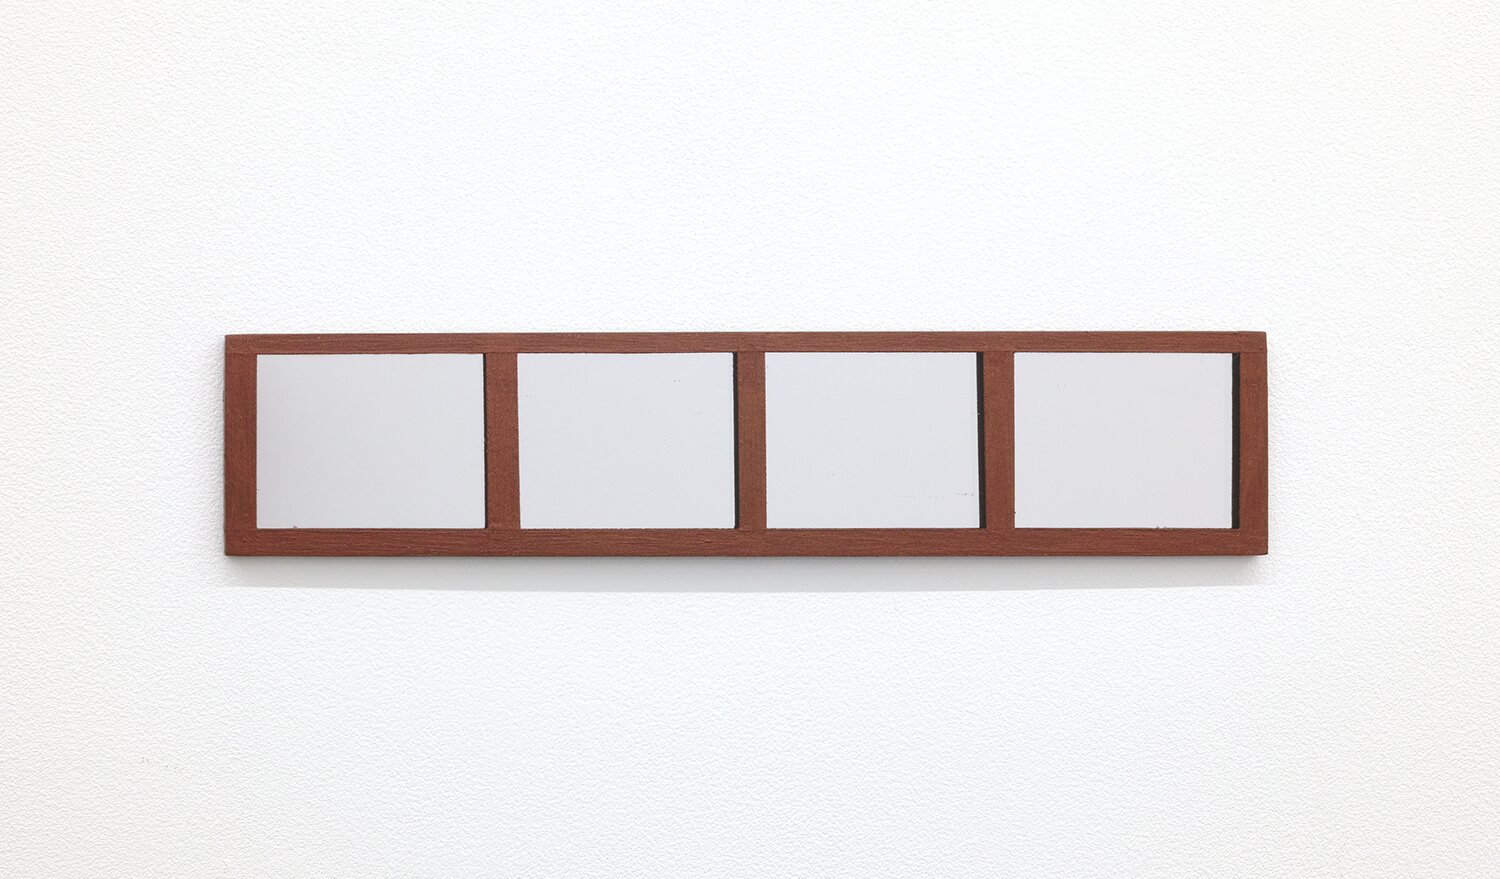 <strong>Untitled </strong><br>Acrylic paint, Japanese paper, wood, acrylic mirror 51 x 266 x 3 mm 2018